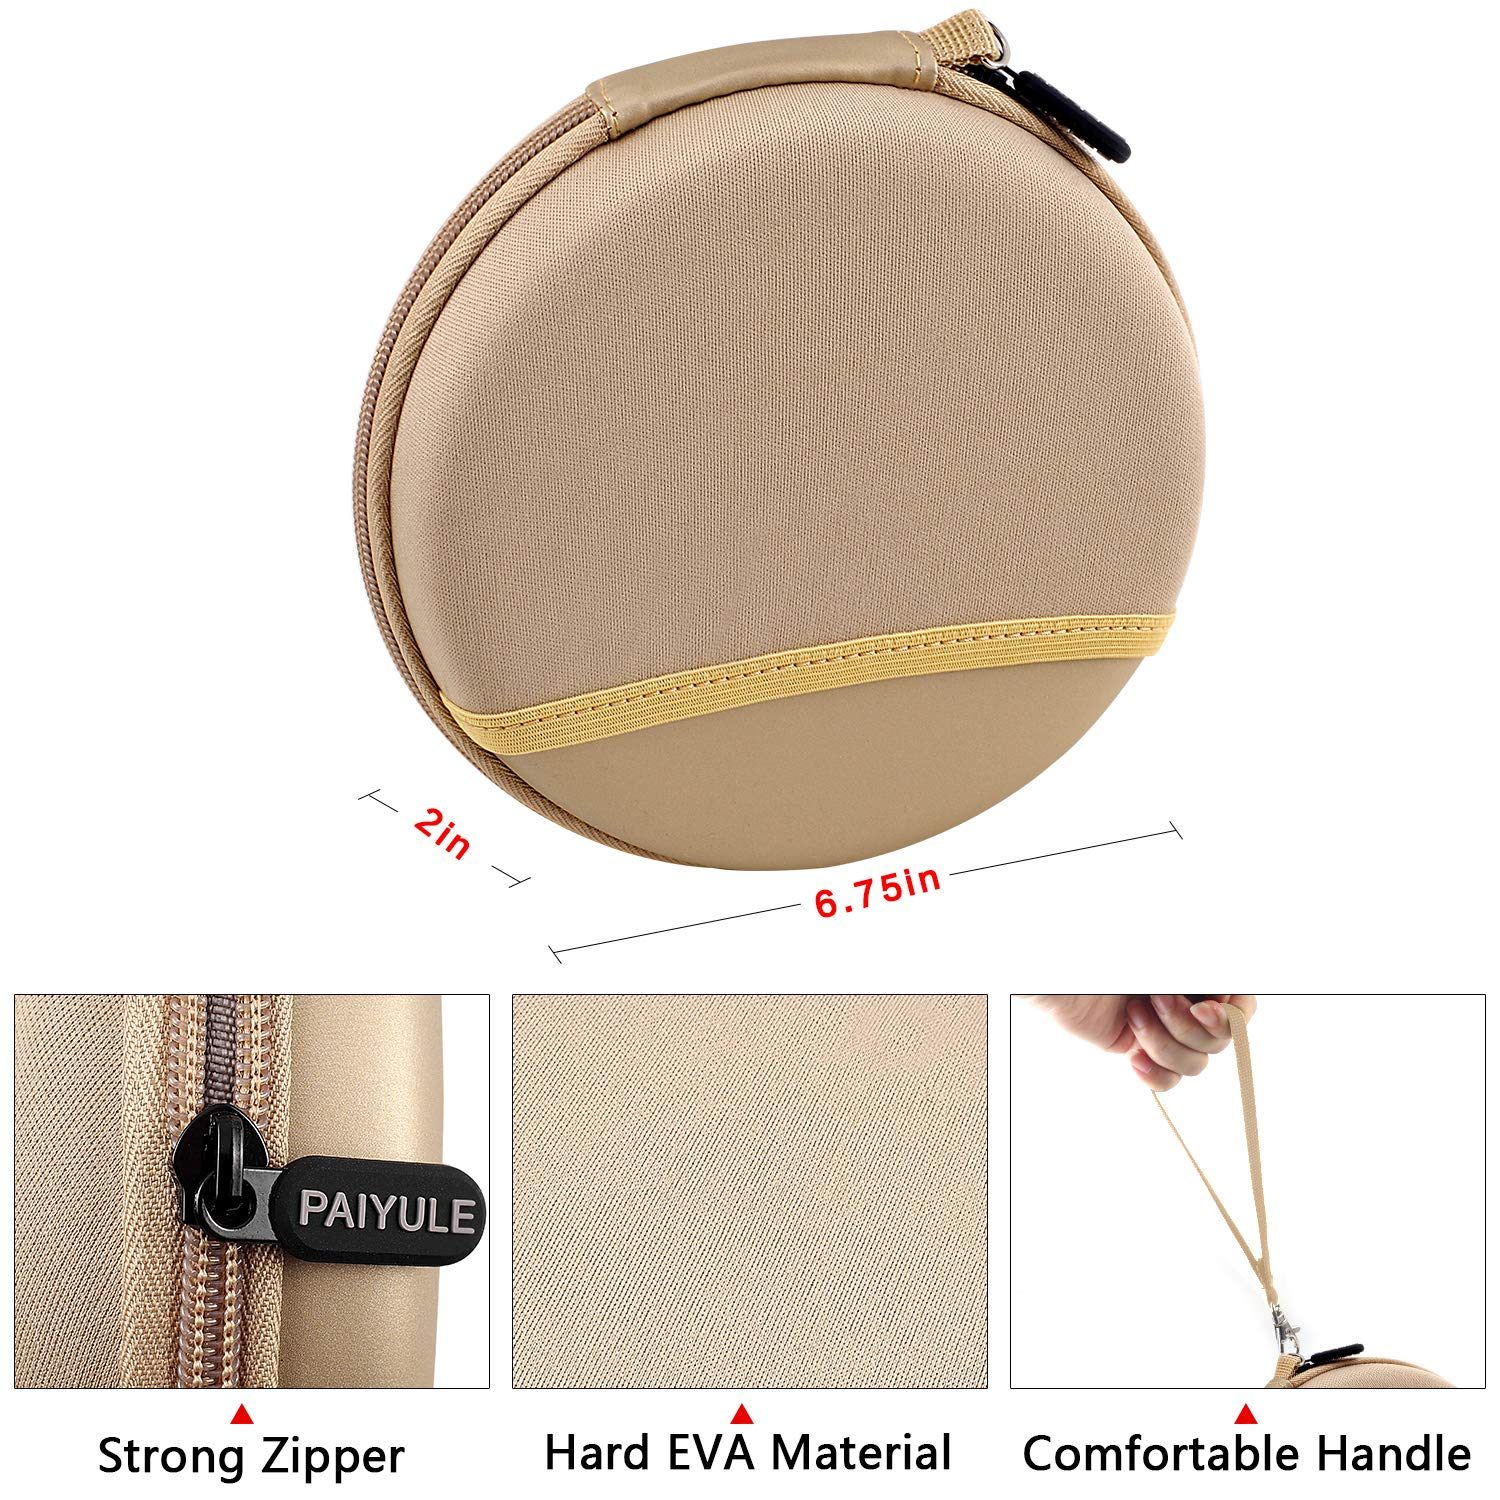 Personal Compact Disc Player CD711 Wellgain Case Compatible for HOTT Rechargeable Portable CD Player Gold CD611